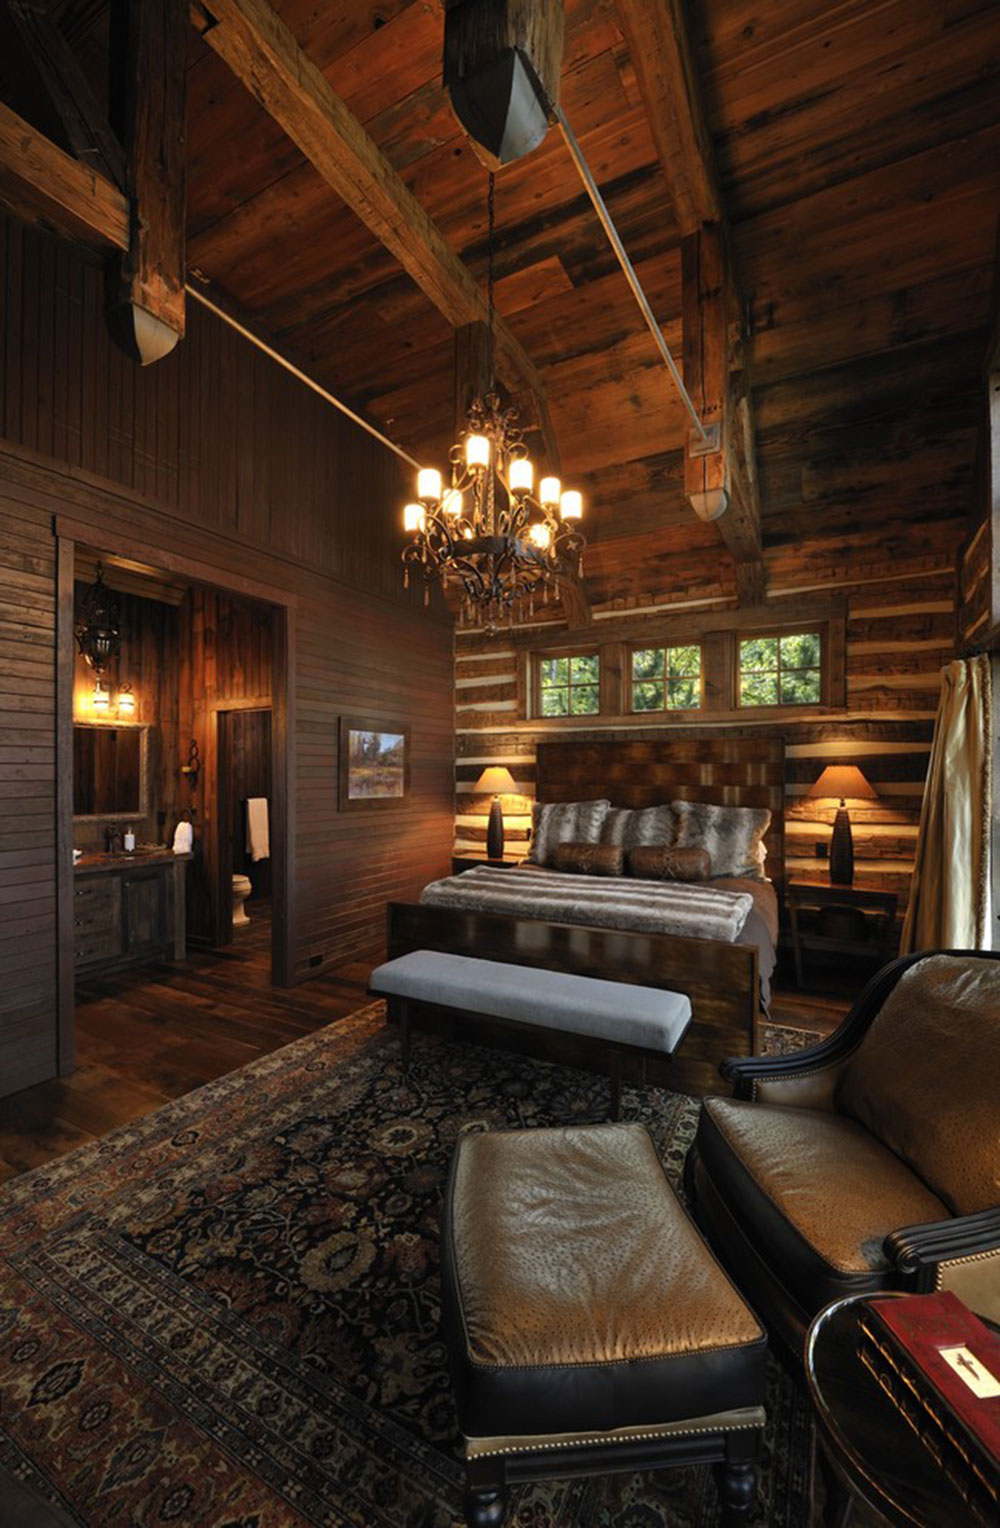 Serenity in Your Master Bedroom Layout14 Serenity in Your Master Bedroom Layout